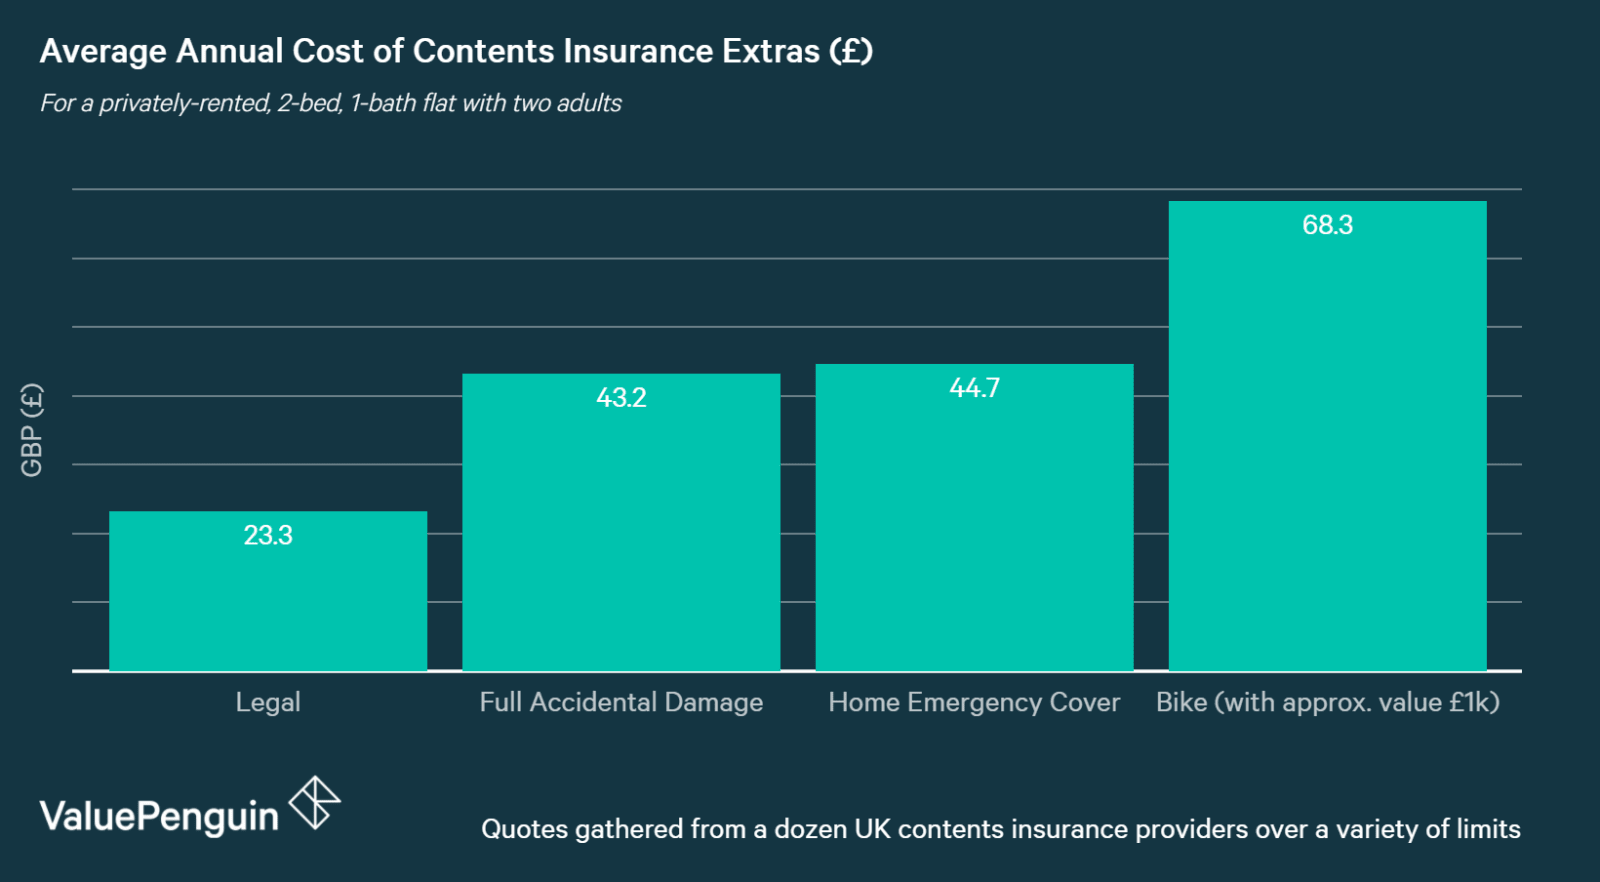 chart showing Annual Cost of Contents Insurance Extras